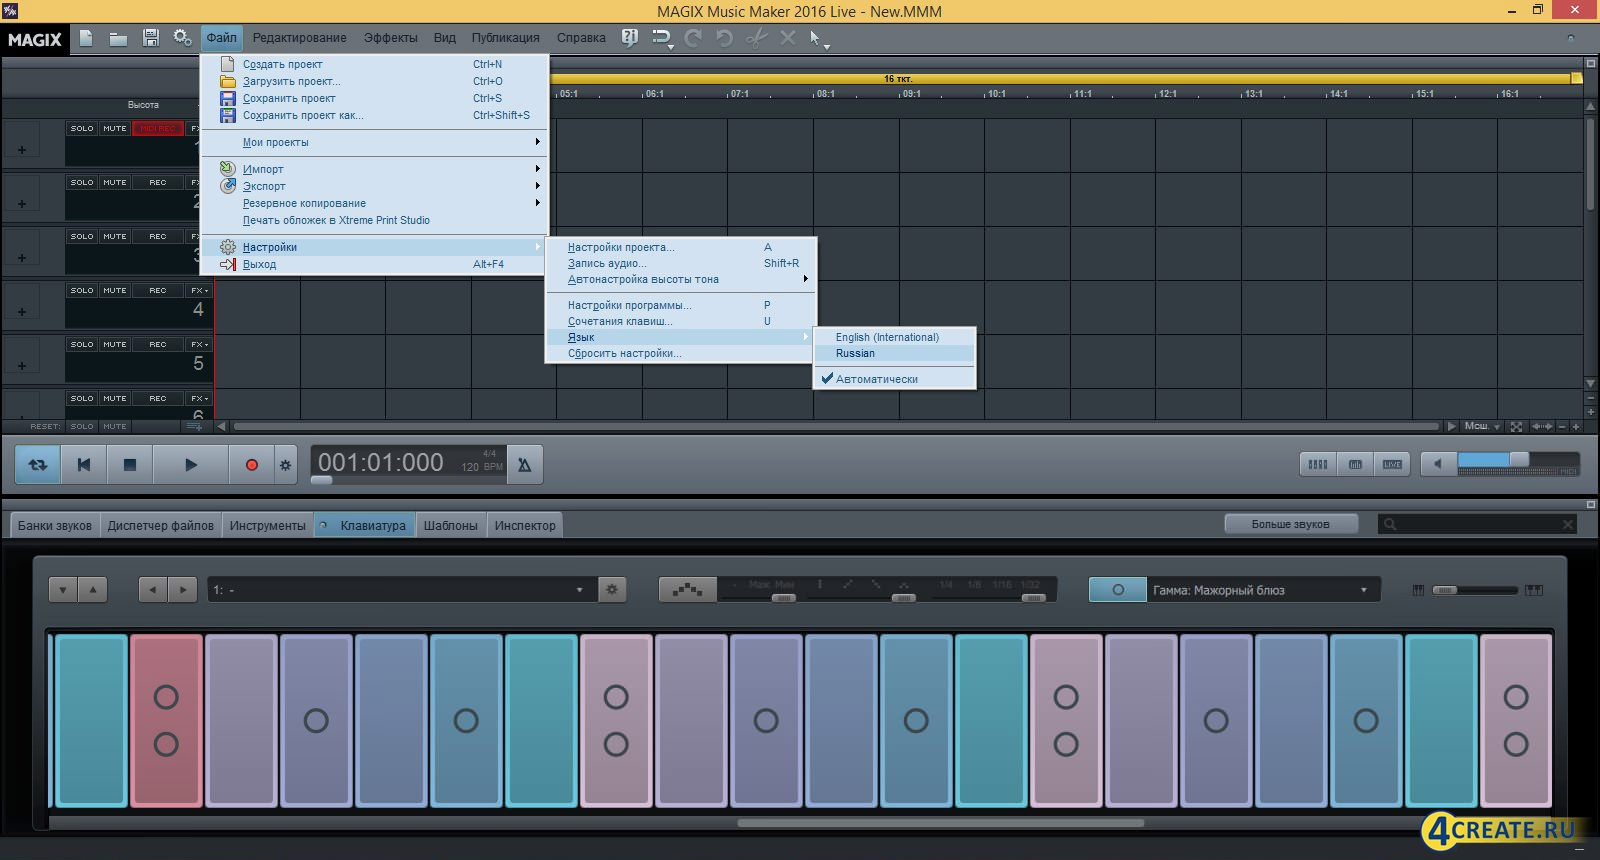 MAGIX Music Maker 2016 (Скриншот 2)